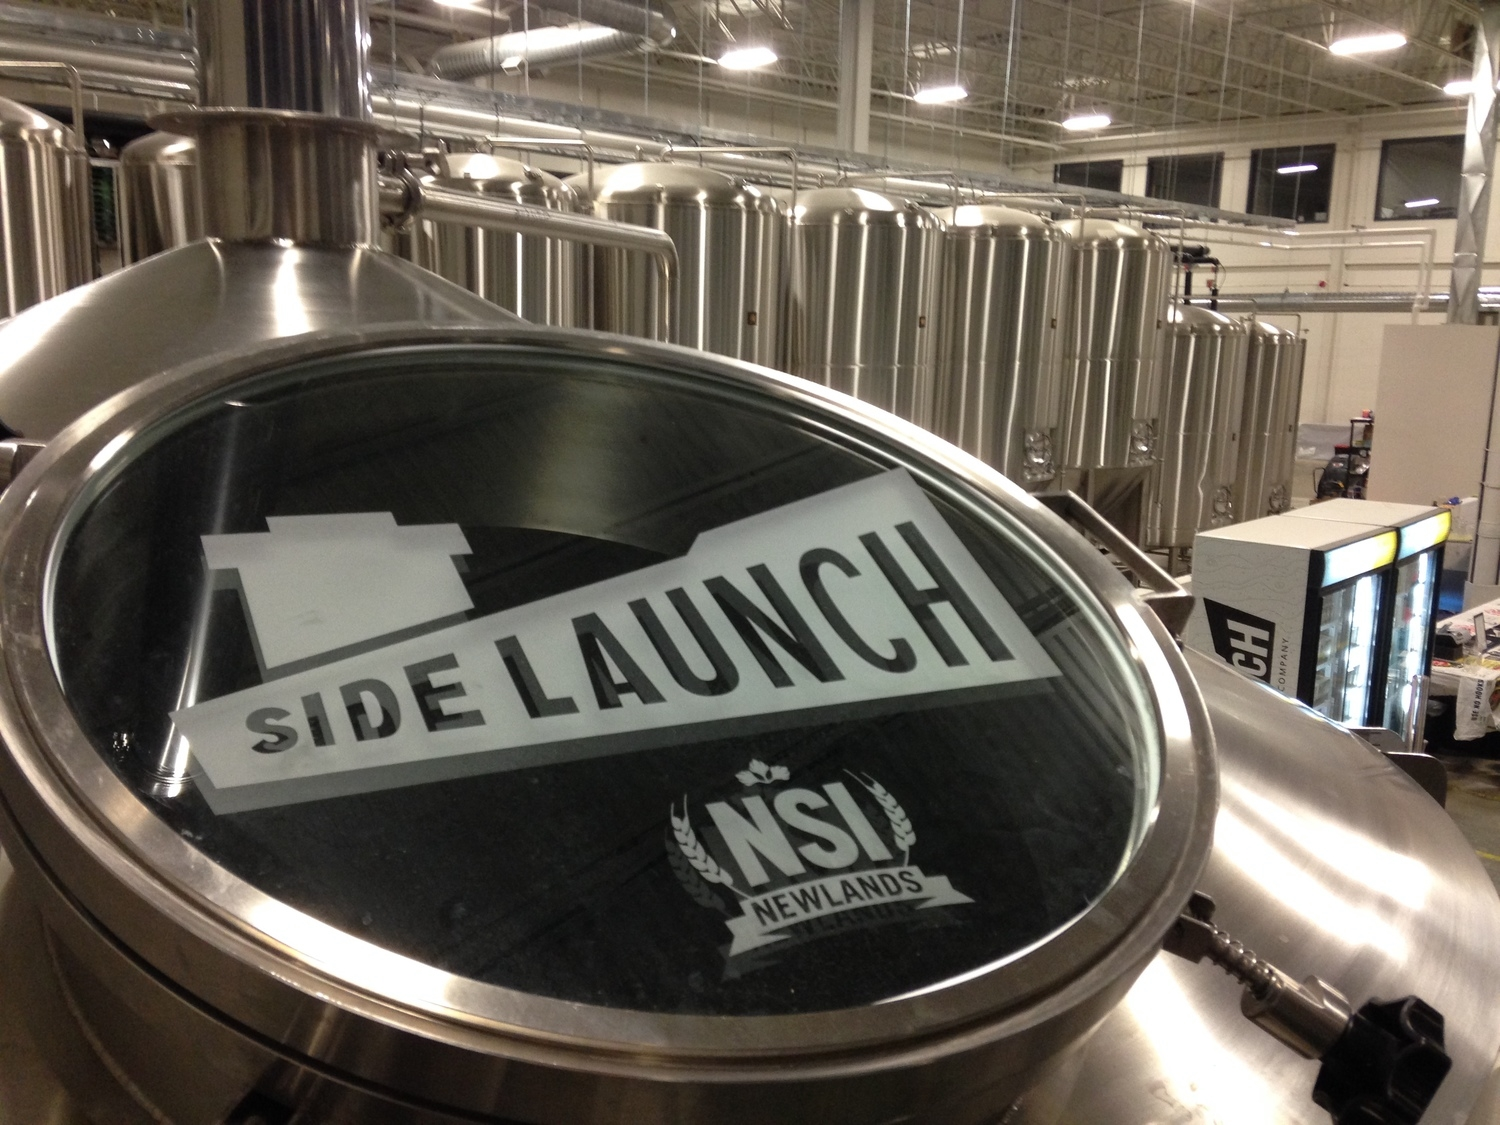 Brewery Toursat Side Launch Brewing Company